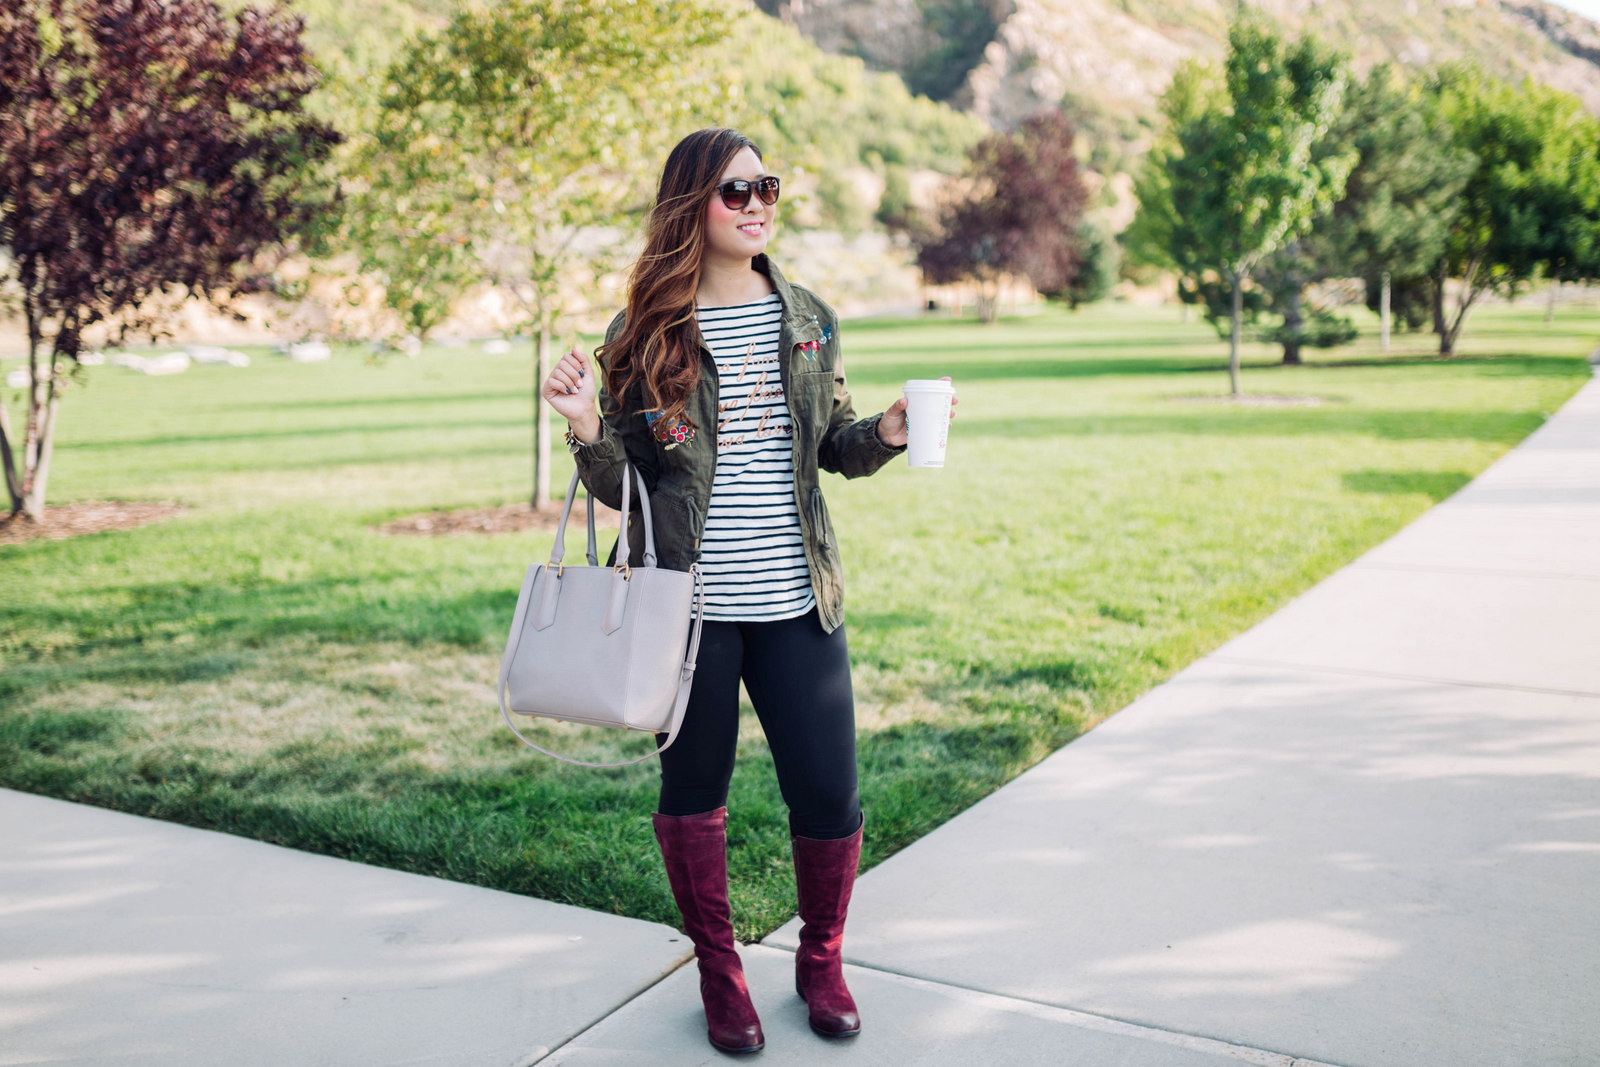 Born Fannar Boots - Burgundy Knee High Boots For Fall by Utah fashion blogger Sandy A La Mode